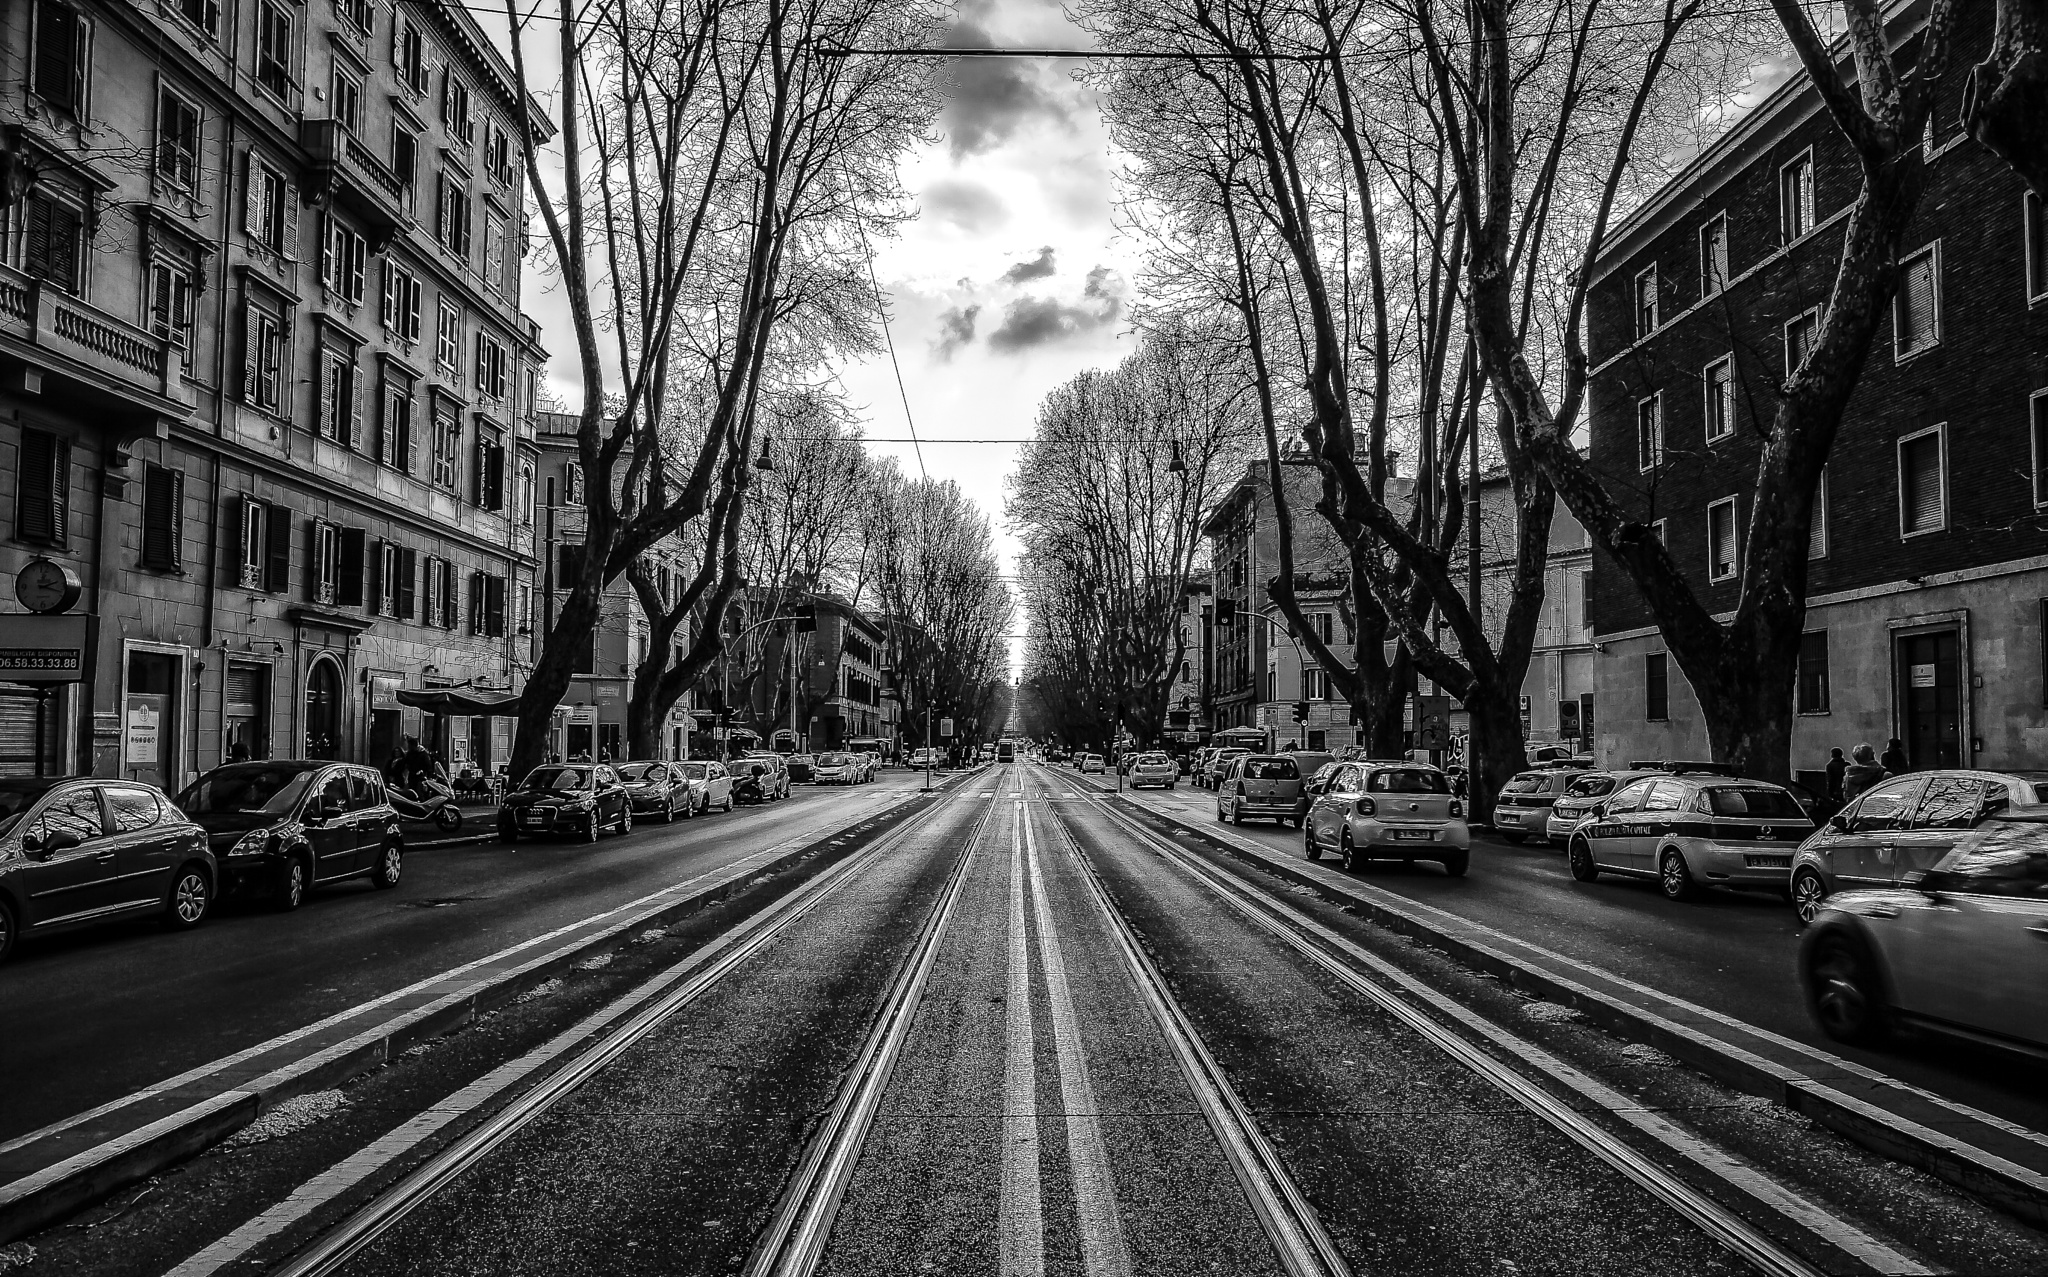 Endless route by marco.l.pigliacelli